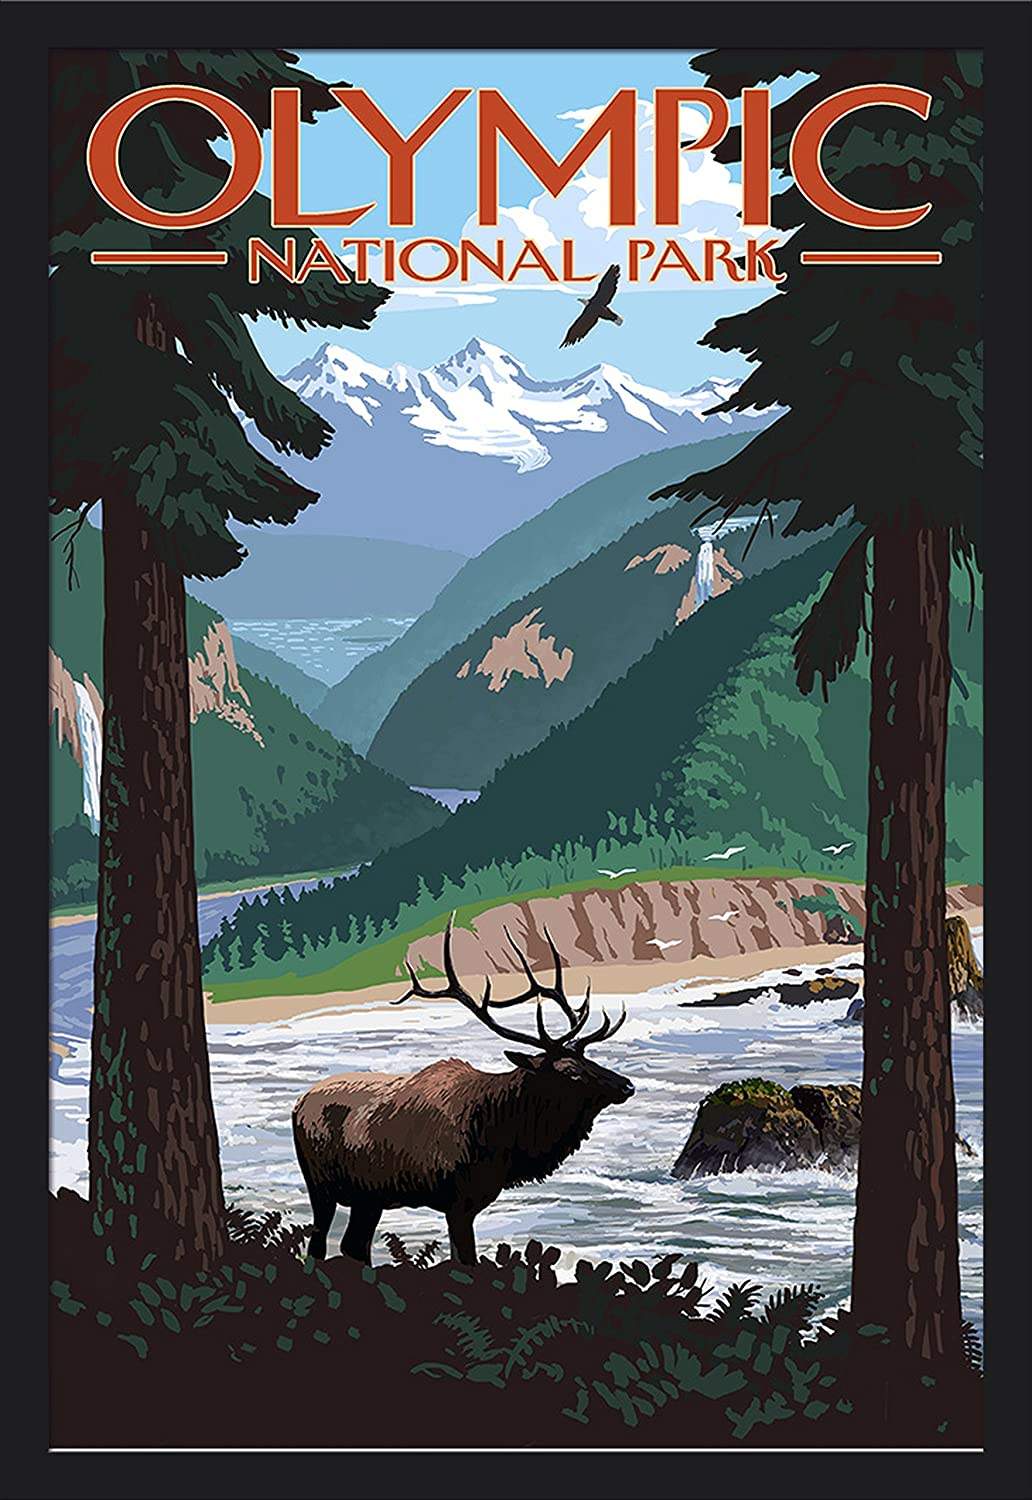 Moose Olympic National Park 16x24 Giclee Art Print, Gallery Framed, Black Wood Washington Grand Valley